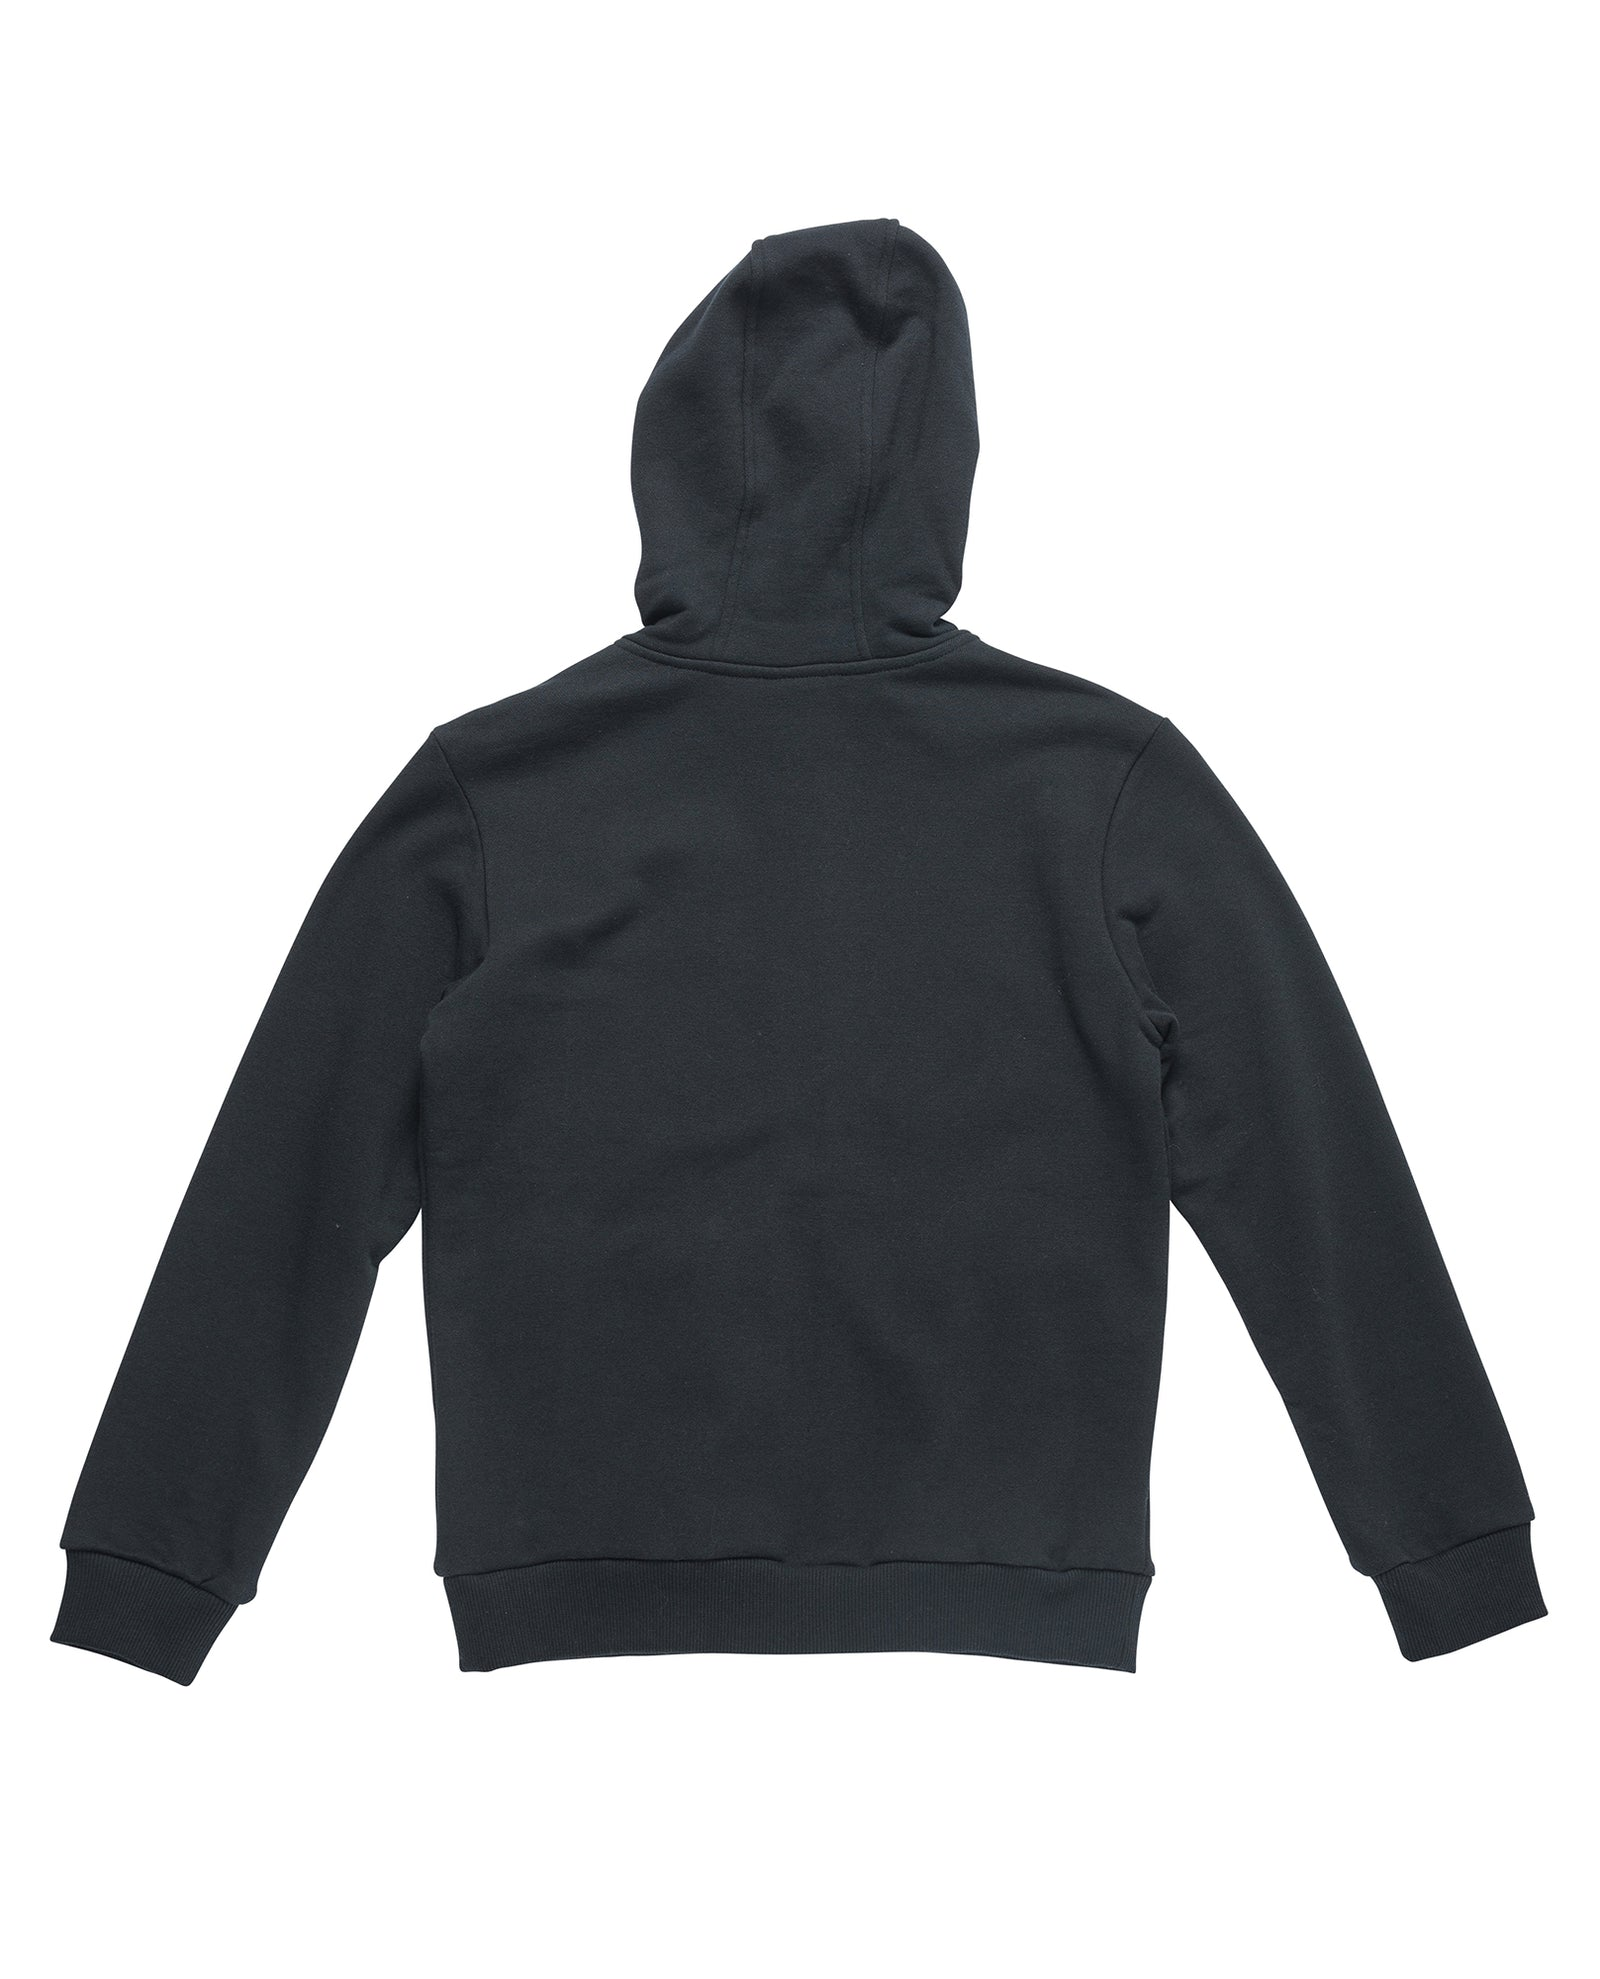 MOST PHOTOPRINT HOODED ZIP